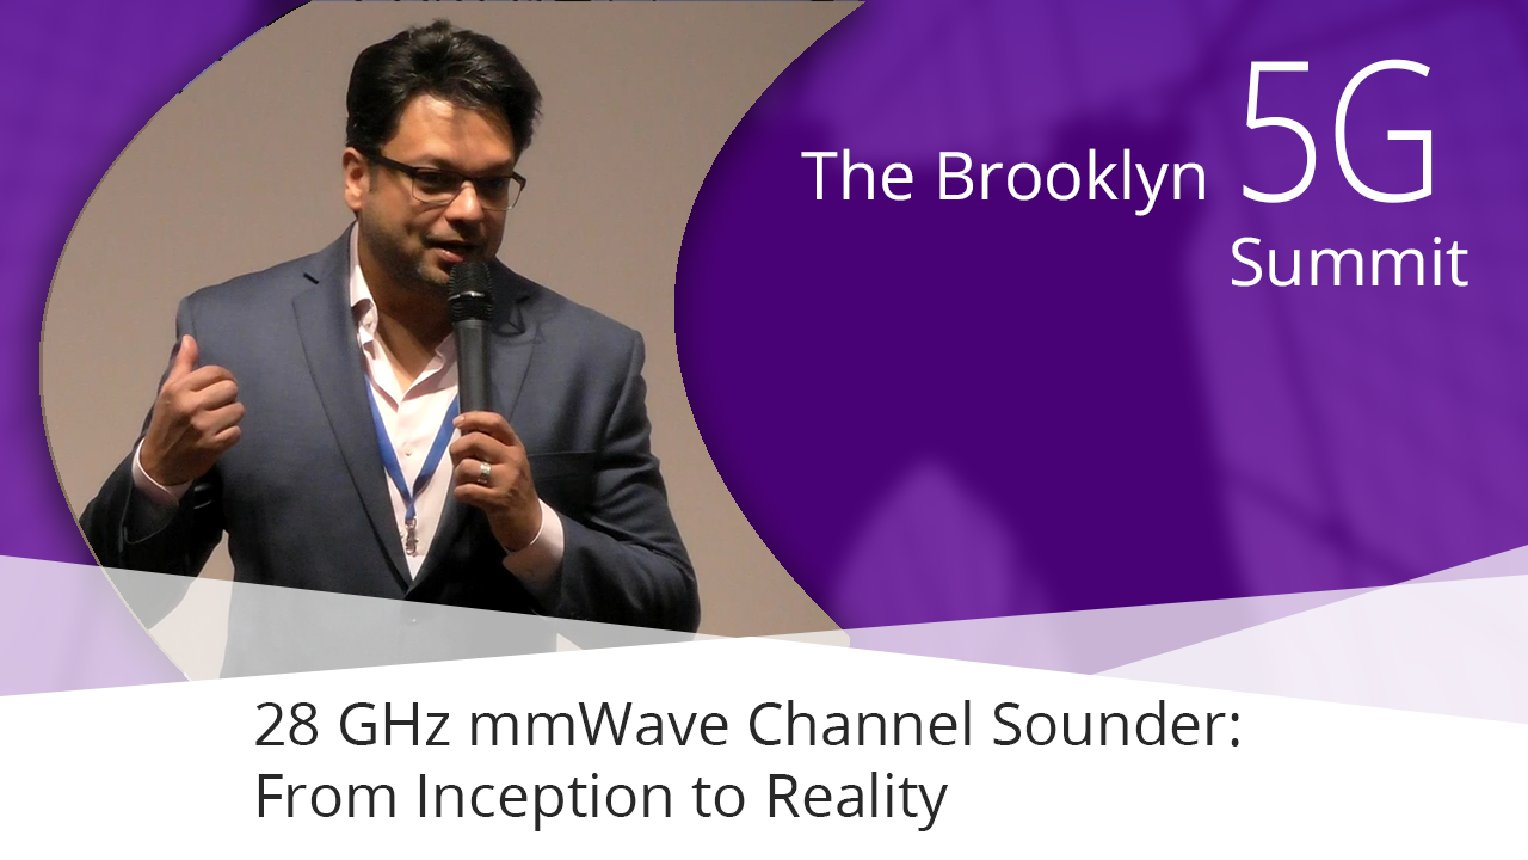 28 GHz mmWave Channel Sounder: From Inception to Reality - Arun Ghosh:  Brooklyn 5G Summit 2017